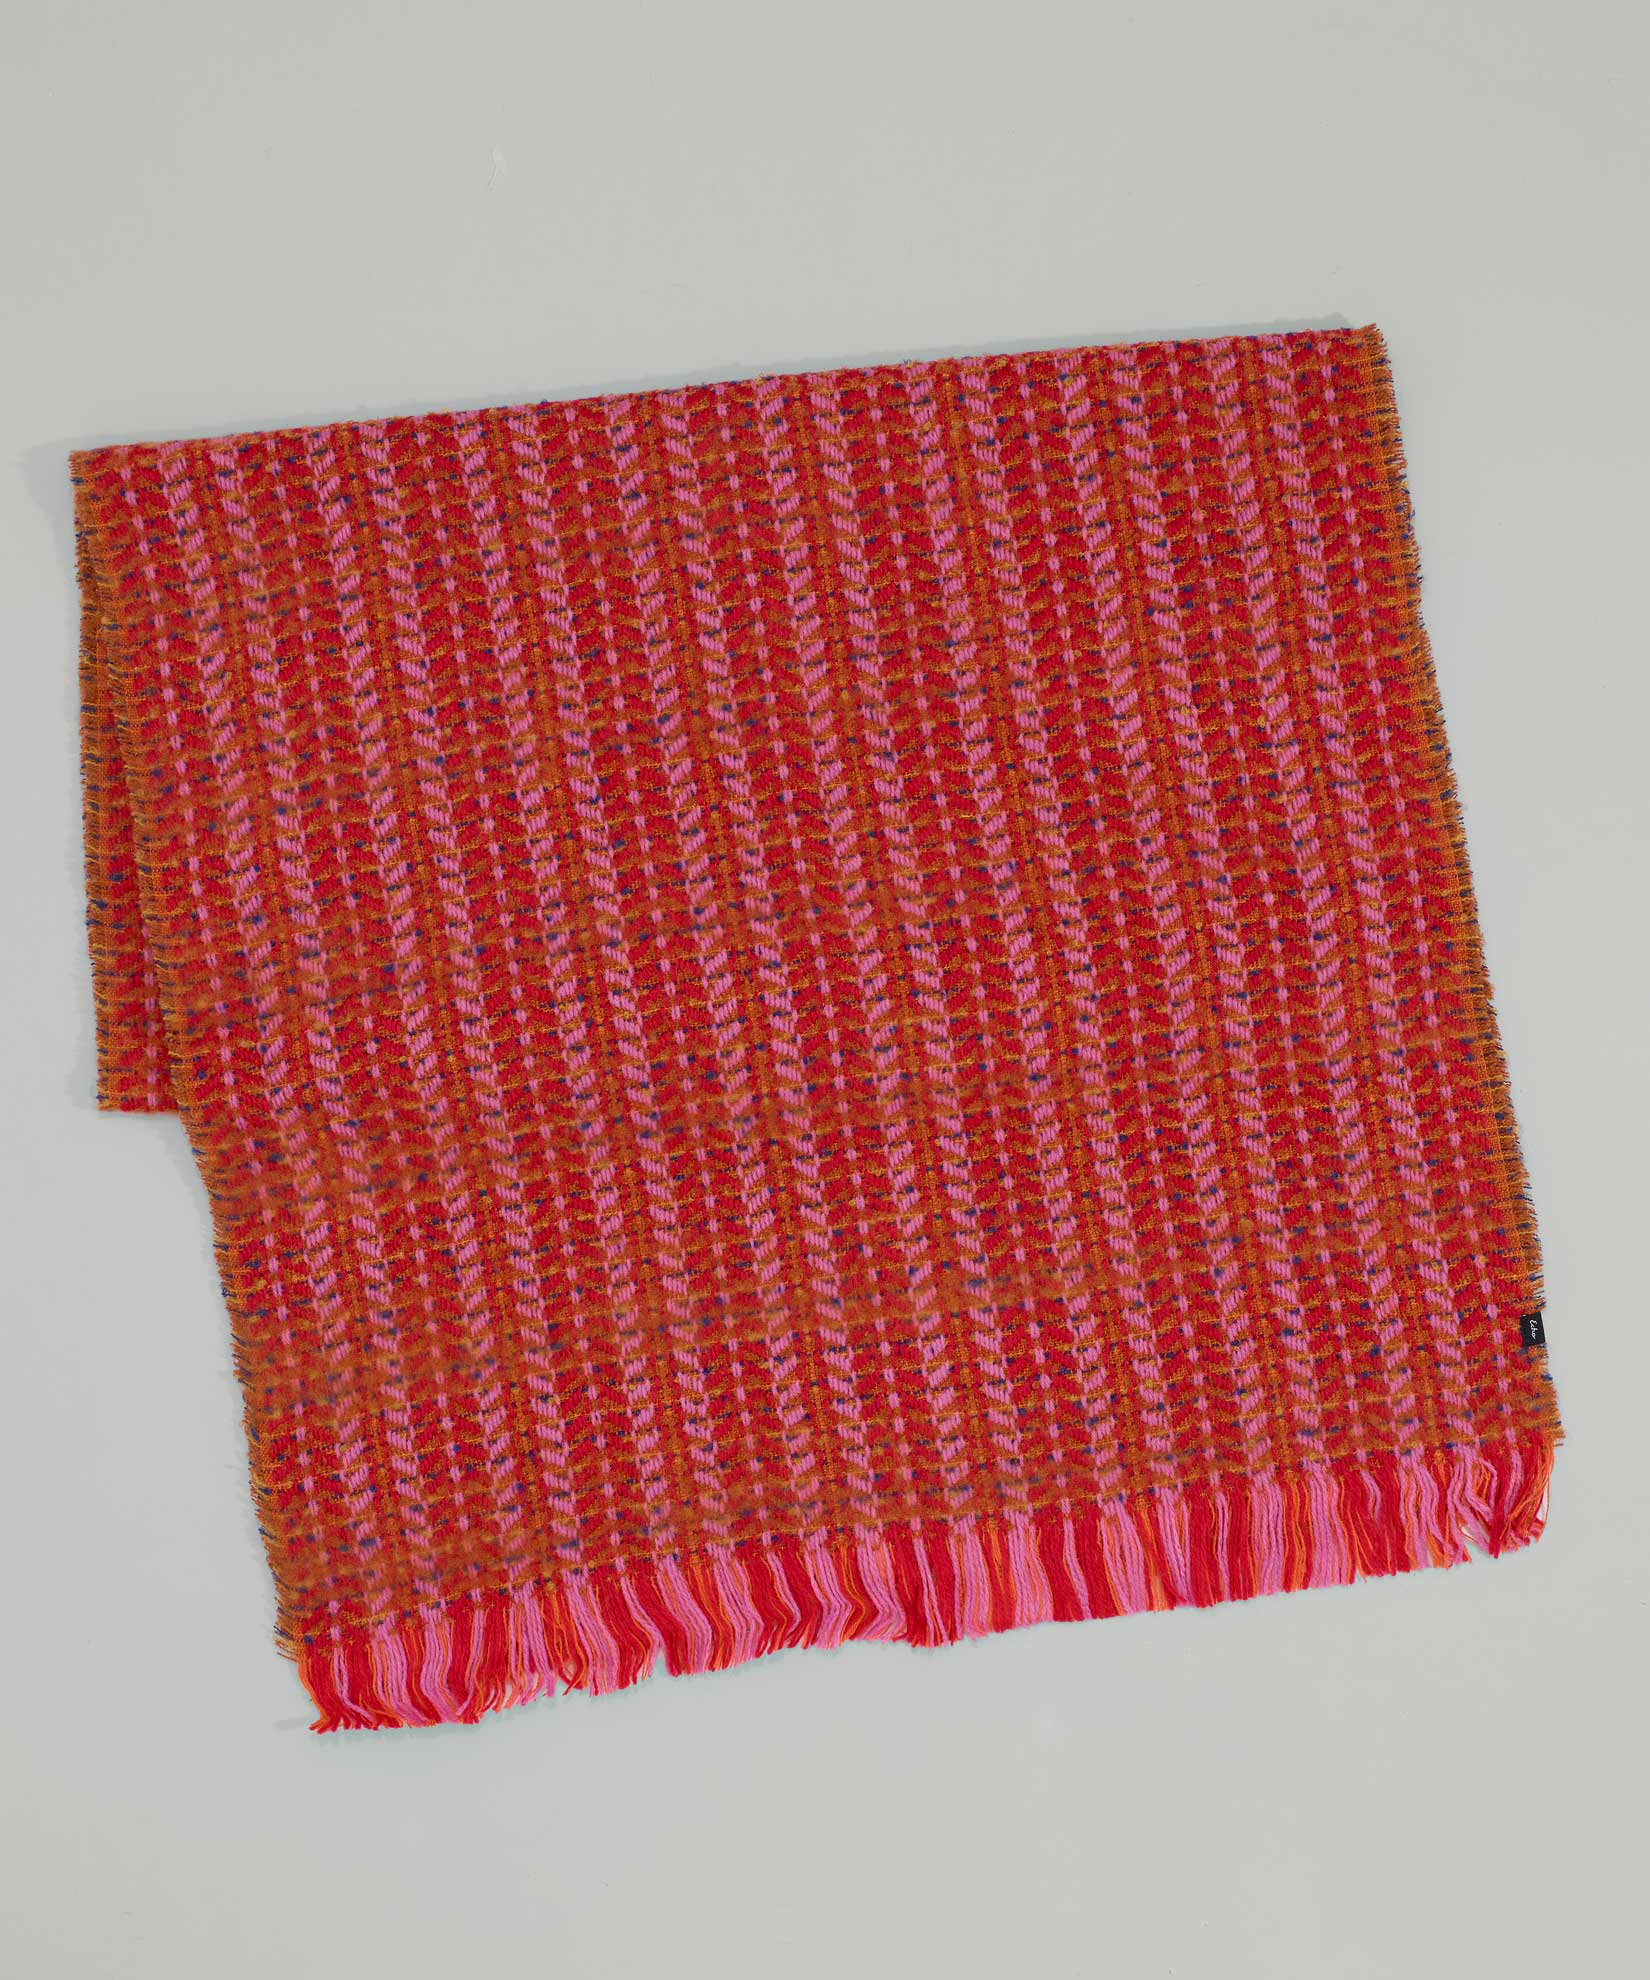 Cherry Red - Multistitch Oblong